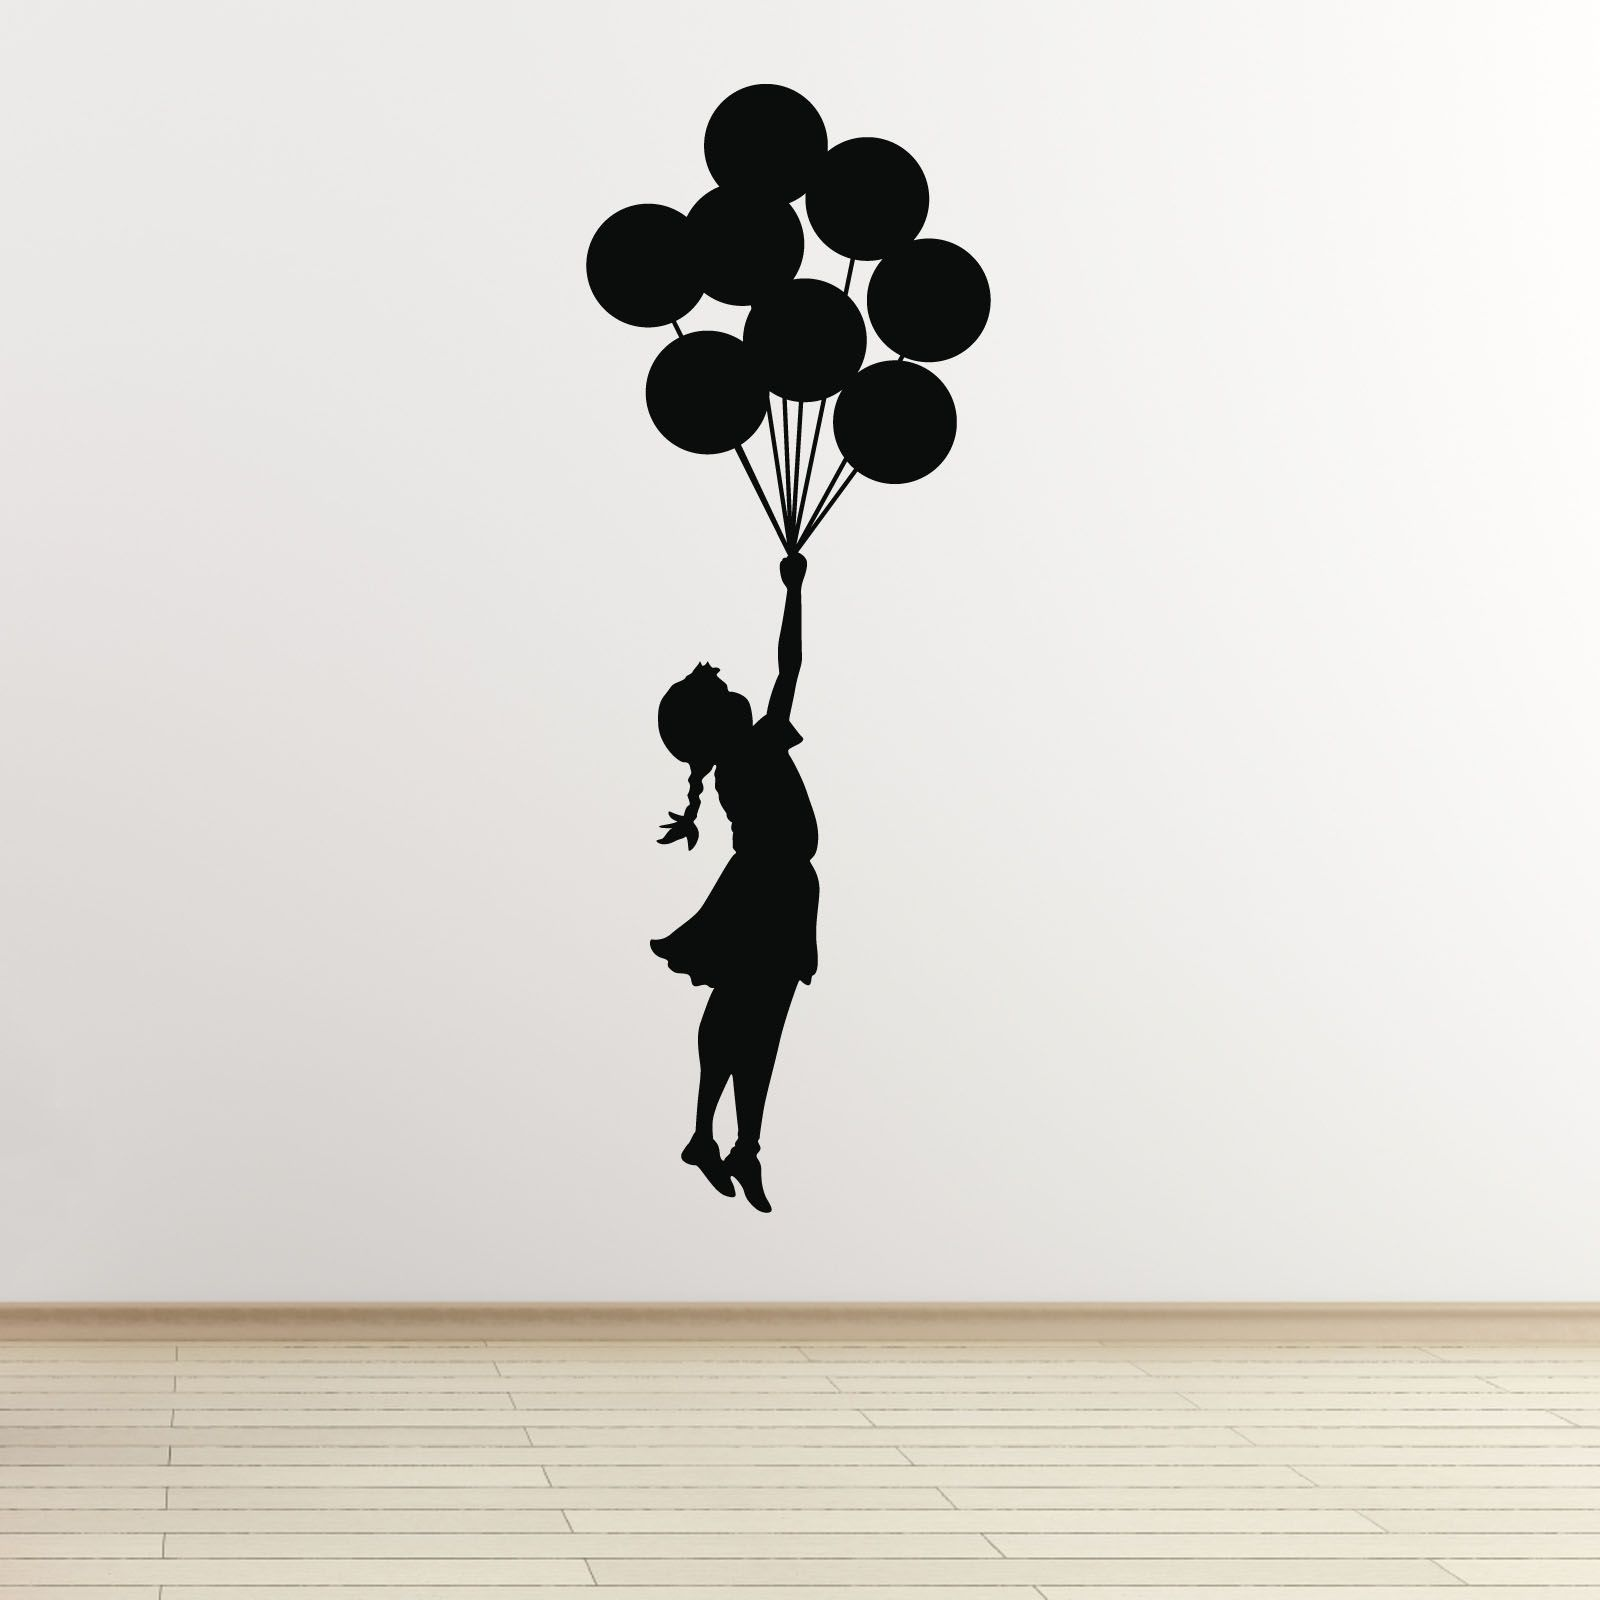 banksy flying balloon girl wall decal 1600 1600. Black Bedroom Furniture Sets. Home Design Ideas